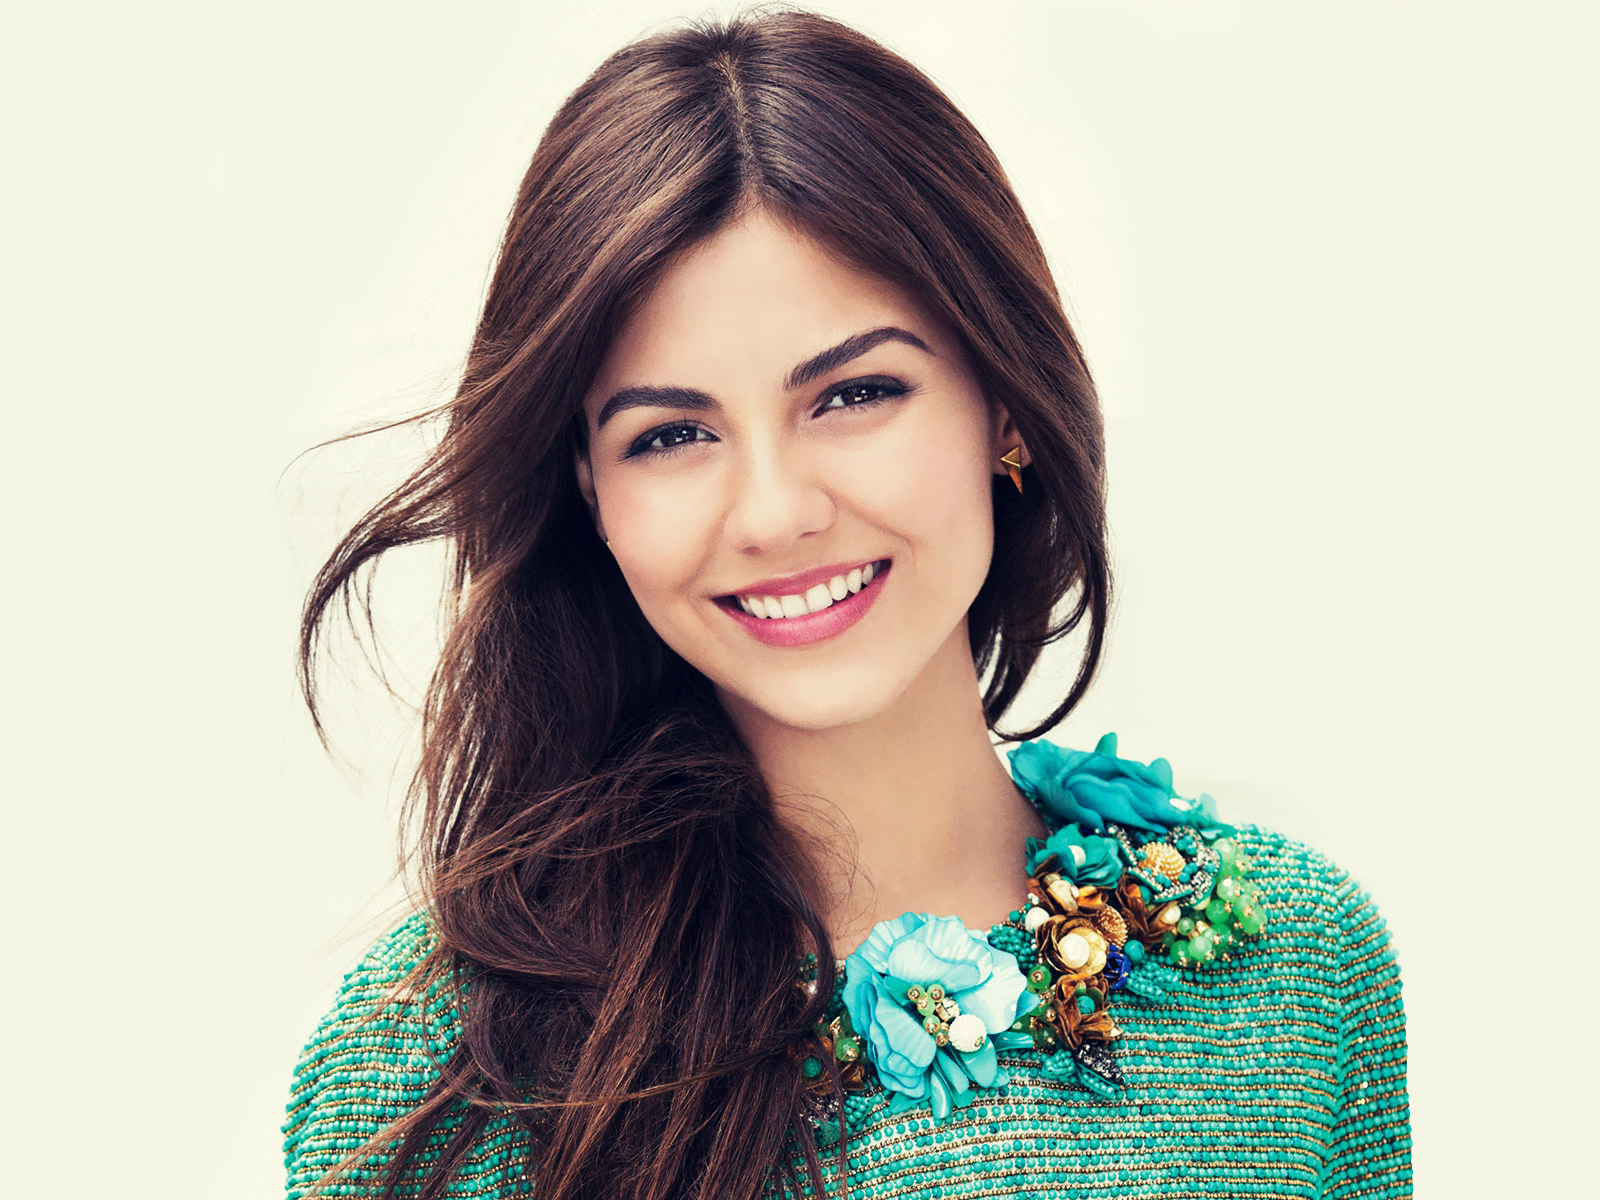 Islamic Quotes Wallpapers For Android Victoria Justice Wallpaper Smile Cute Hd Wallpapers Hd